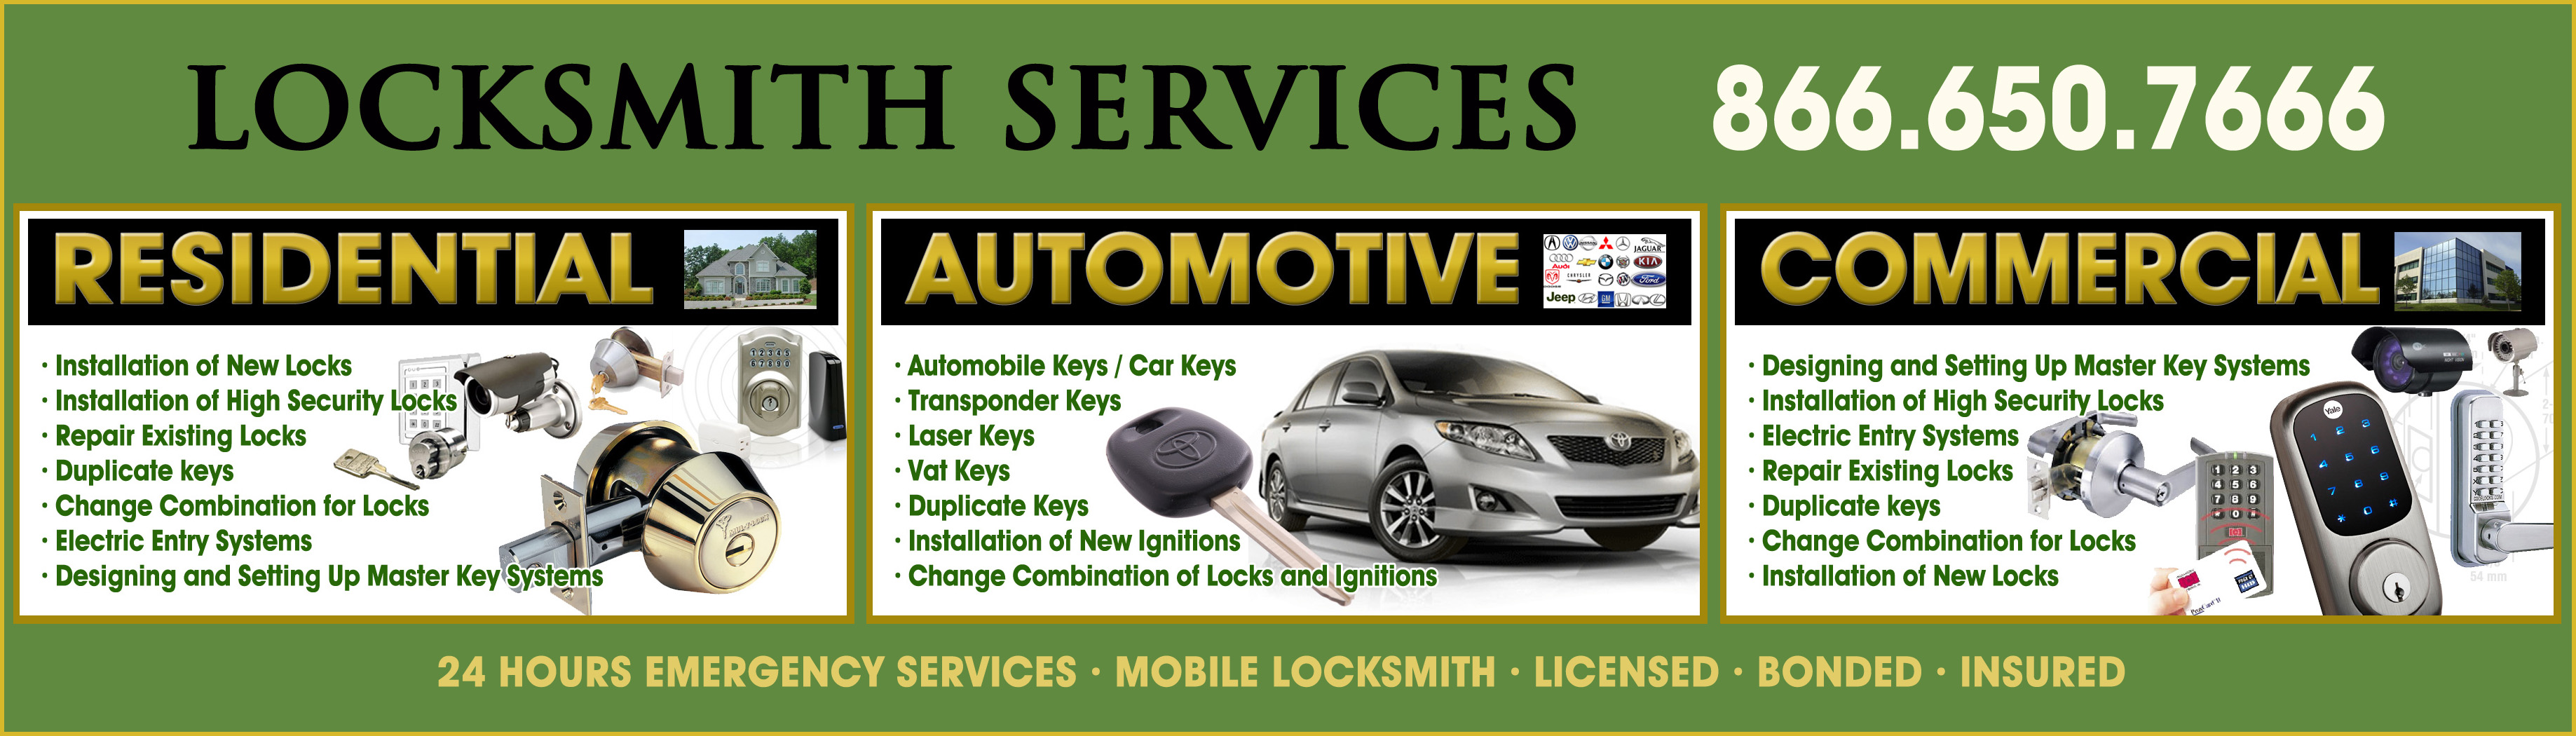 Locksmith service in West Hollywood